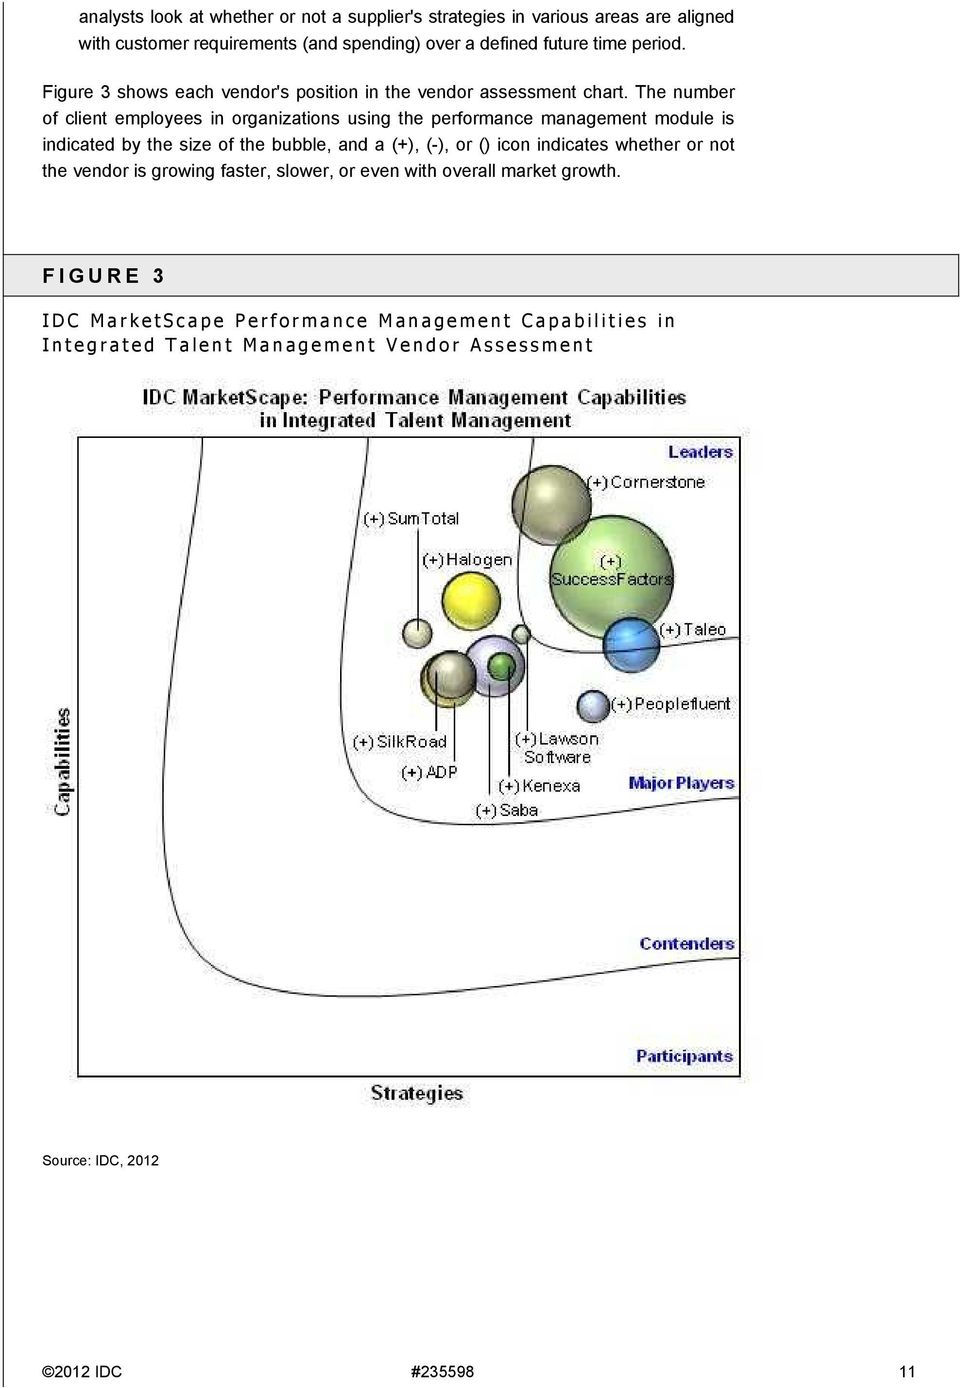 The number of client employees in organizations using the performance management module is indicated by the size of the bubble, and a (+), (-), or () icon